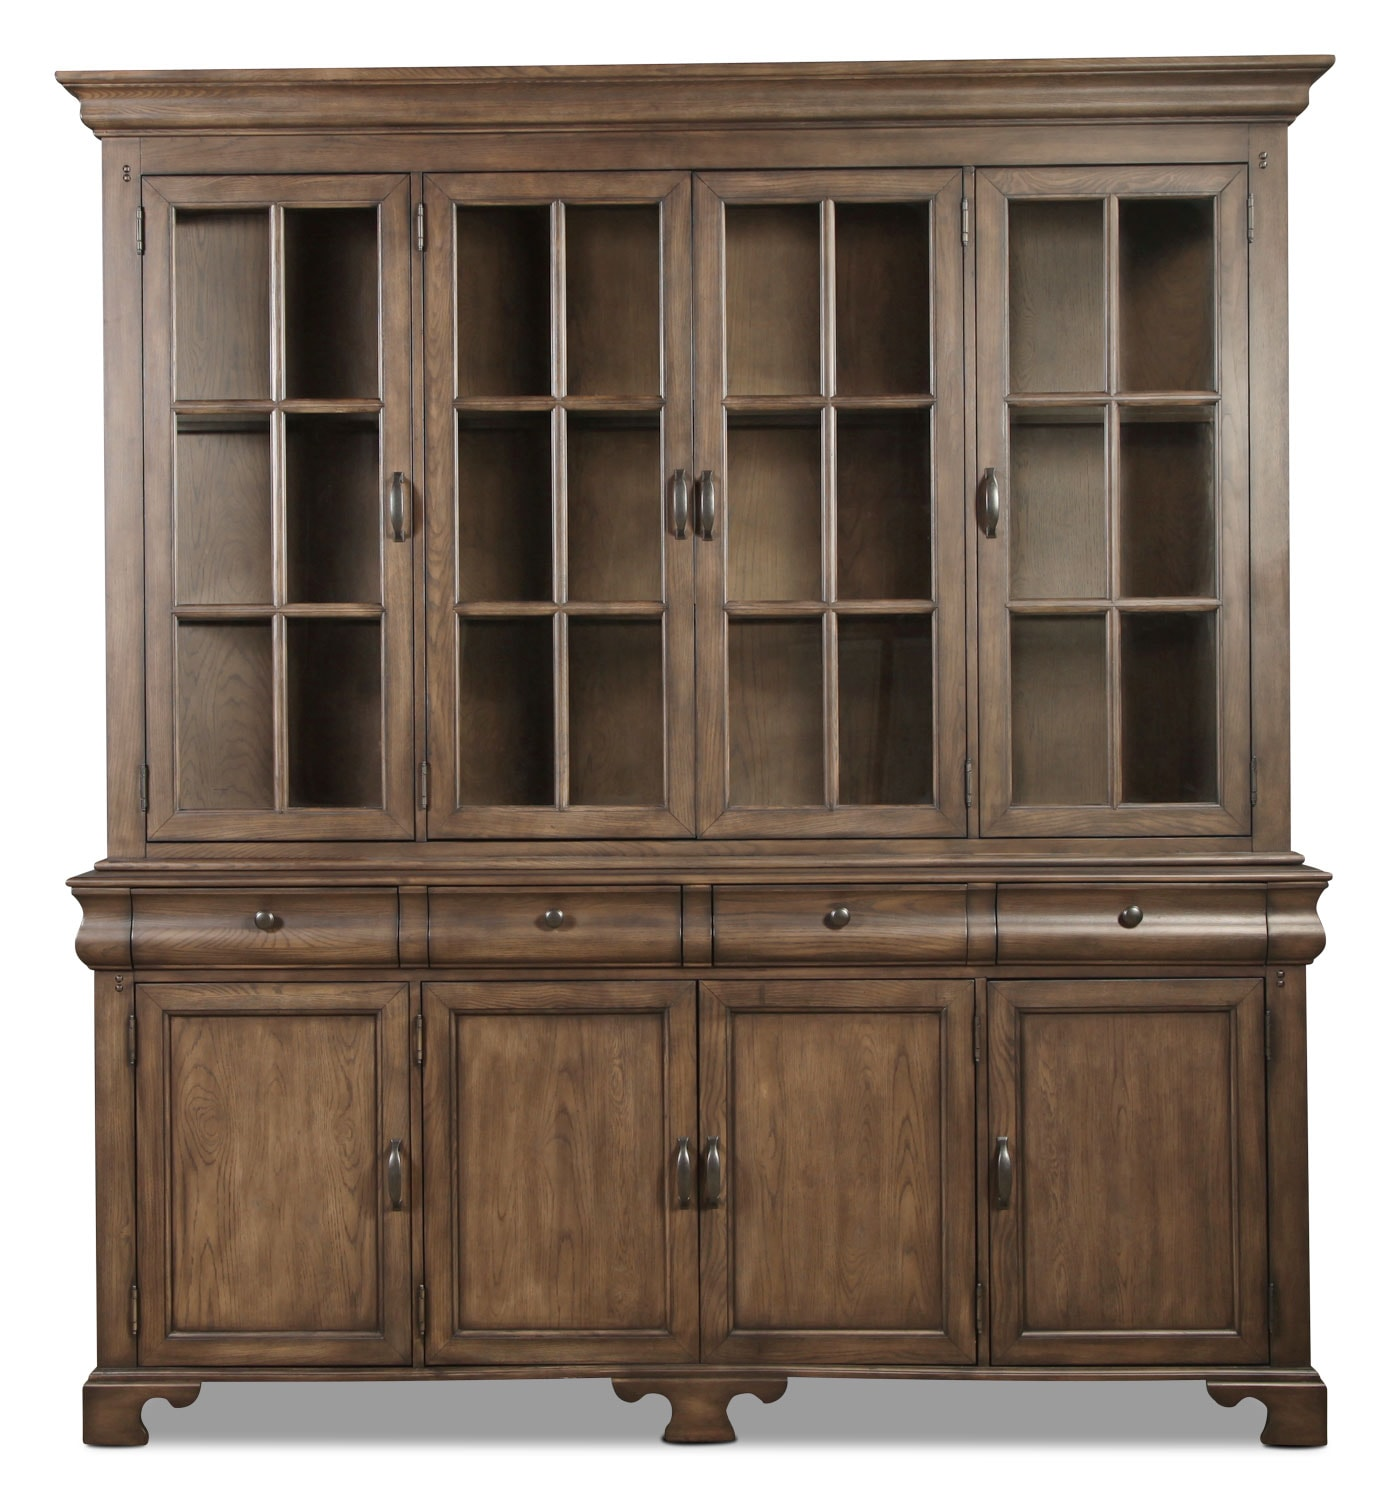 Magnolia home traditional buffet and hutch levin furniture - Dining room hutch and buffet ...